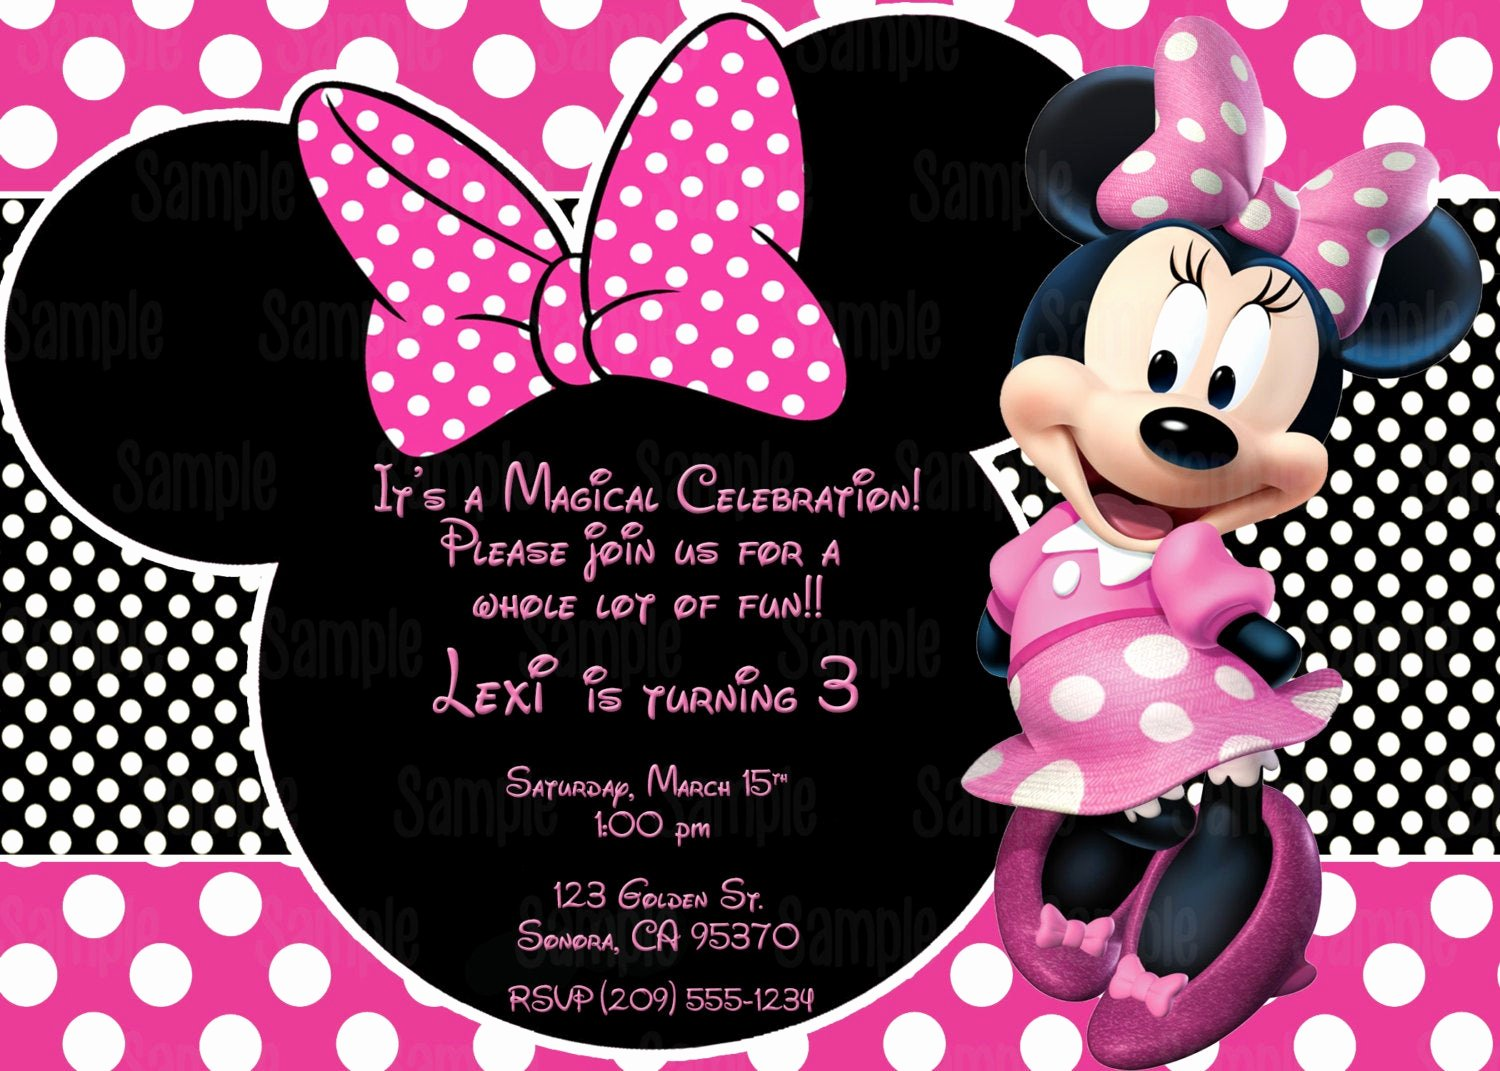 Free Minnie Mouse Invitations Personalized Elegant Printable Minnie Mouse Invitation Plus Free Blank Matching